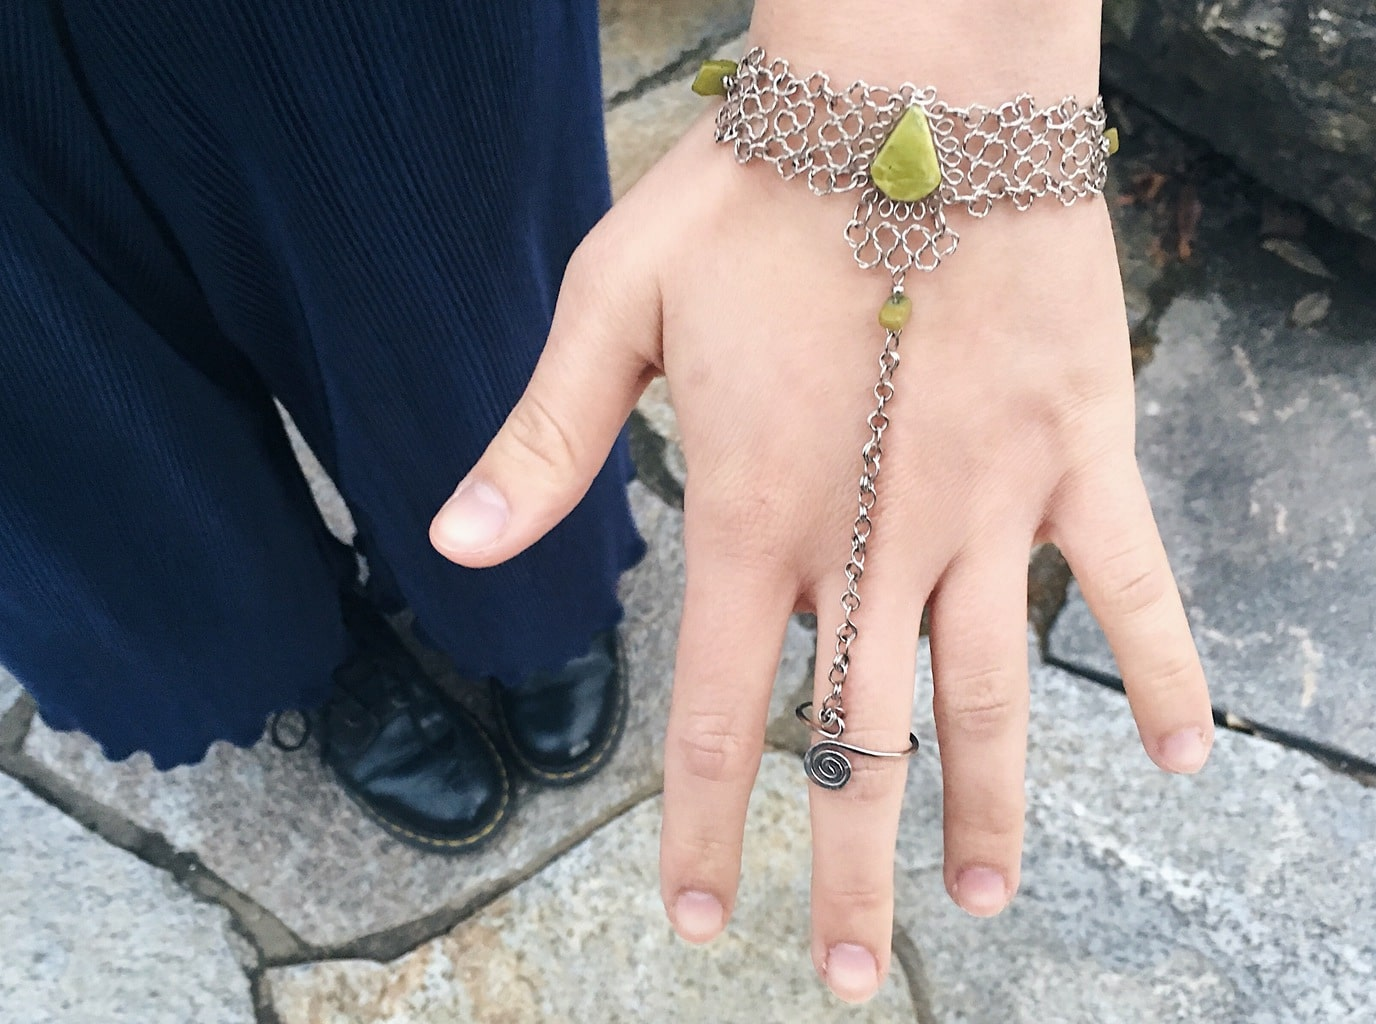 Caeli wears unique silver hand bracelet with detailed metal links that connect a ring to a bracelet. This piece has yellow-green stones to accent.